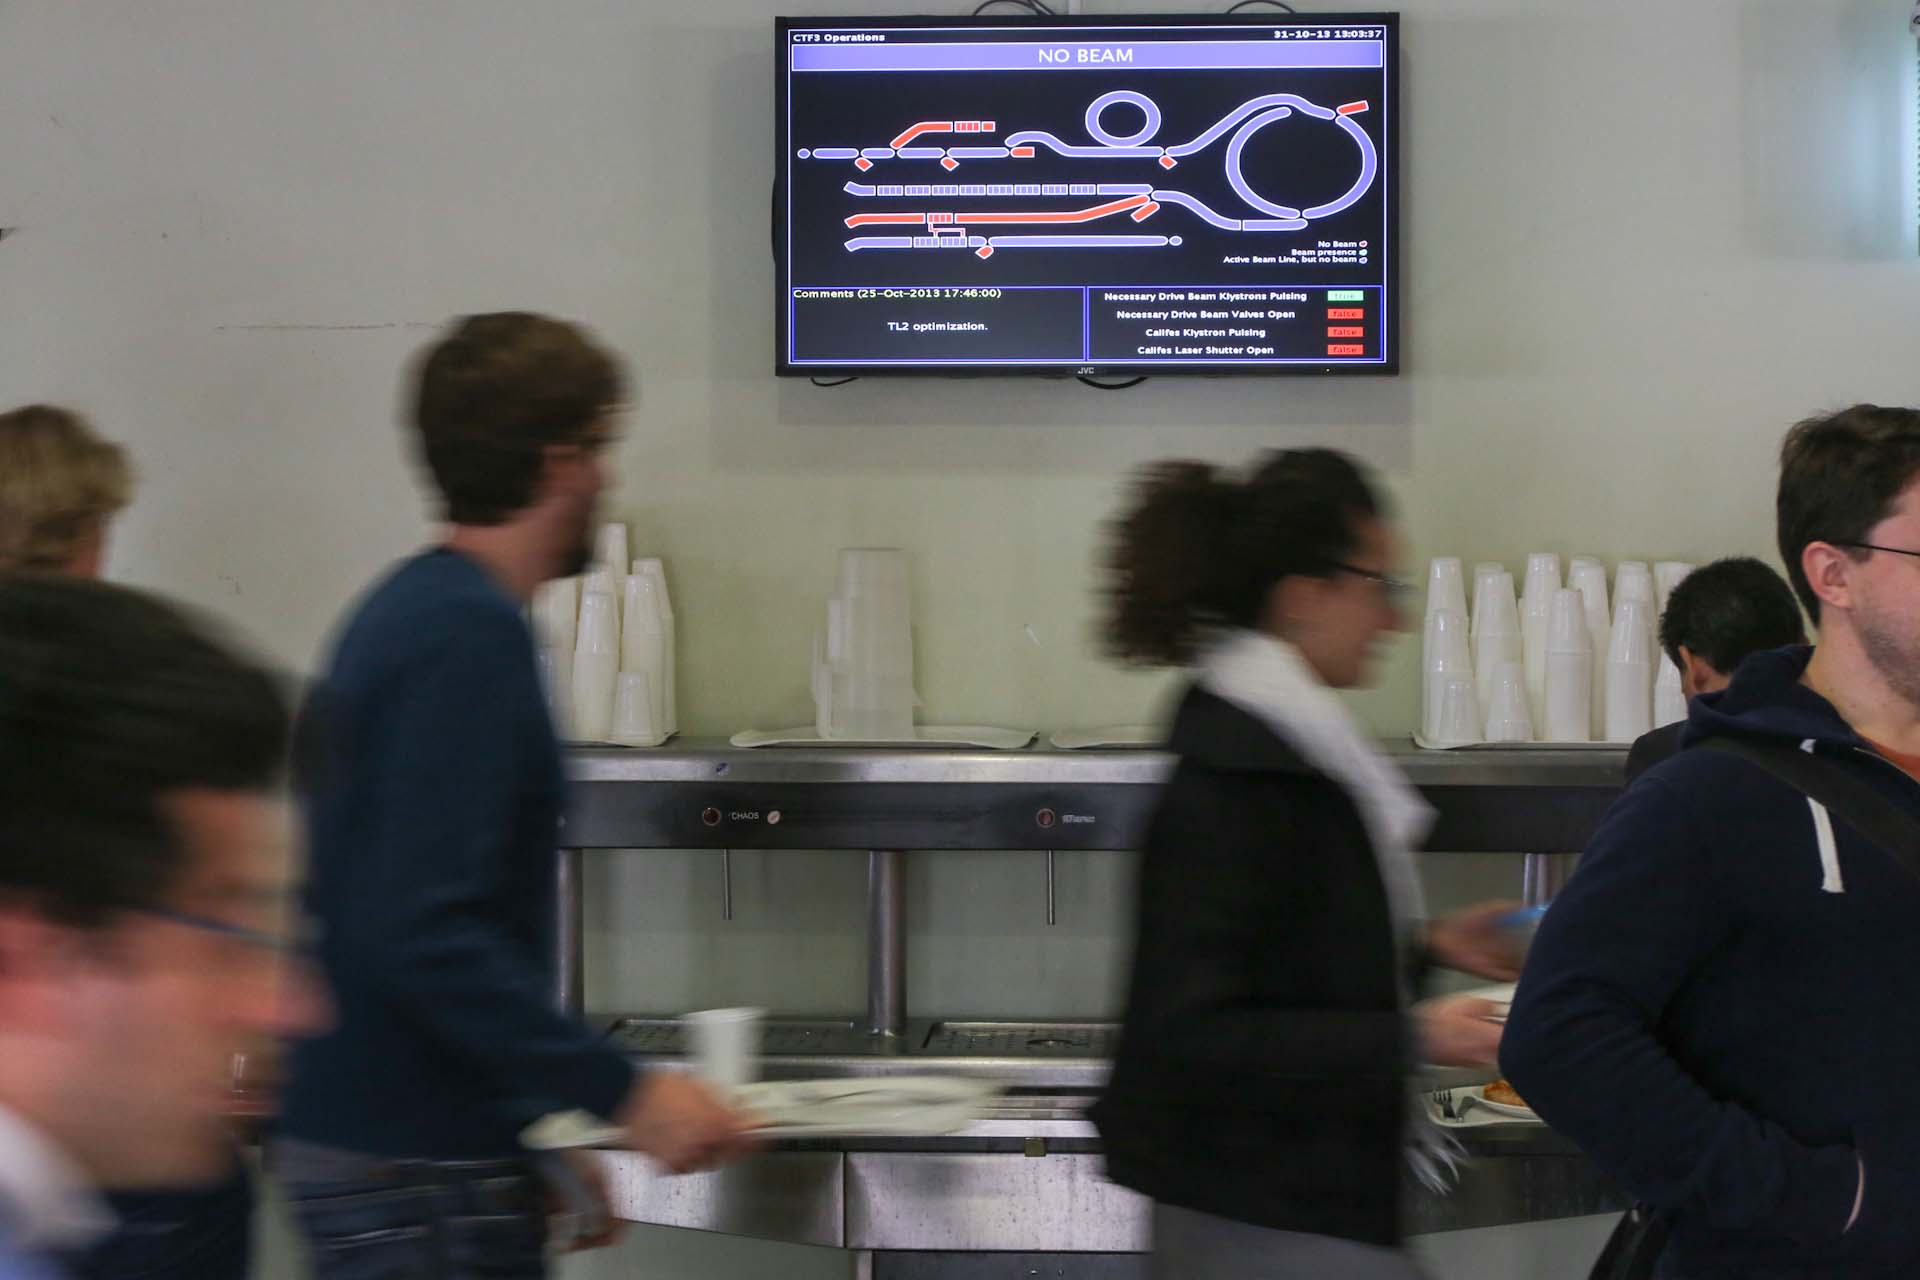 Inside the lunchroom and cafeteria at the CERN, a screen shows live informations about current LHC beam studies